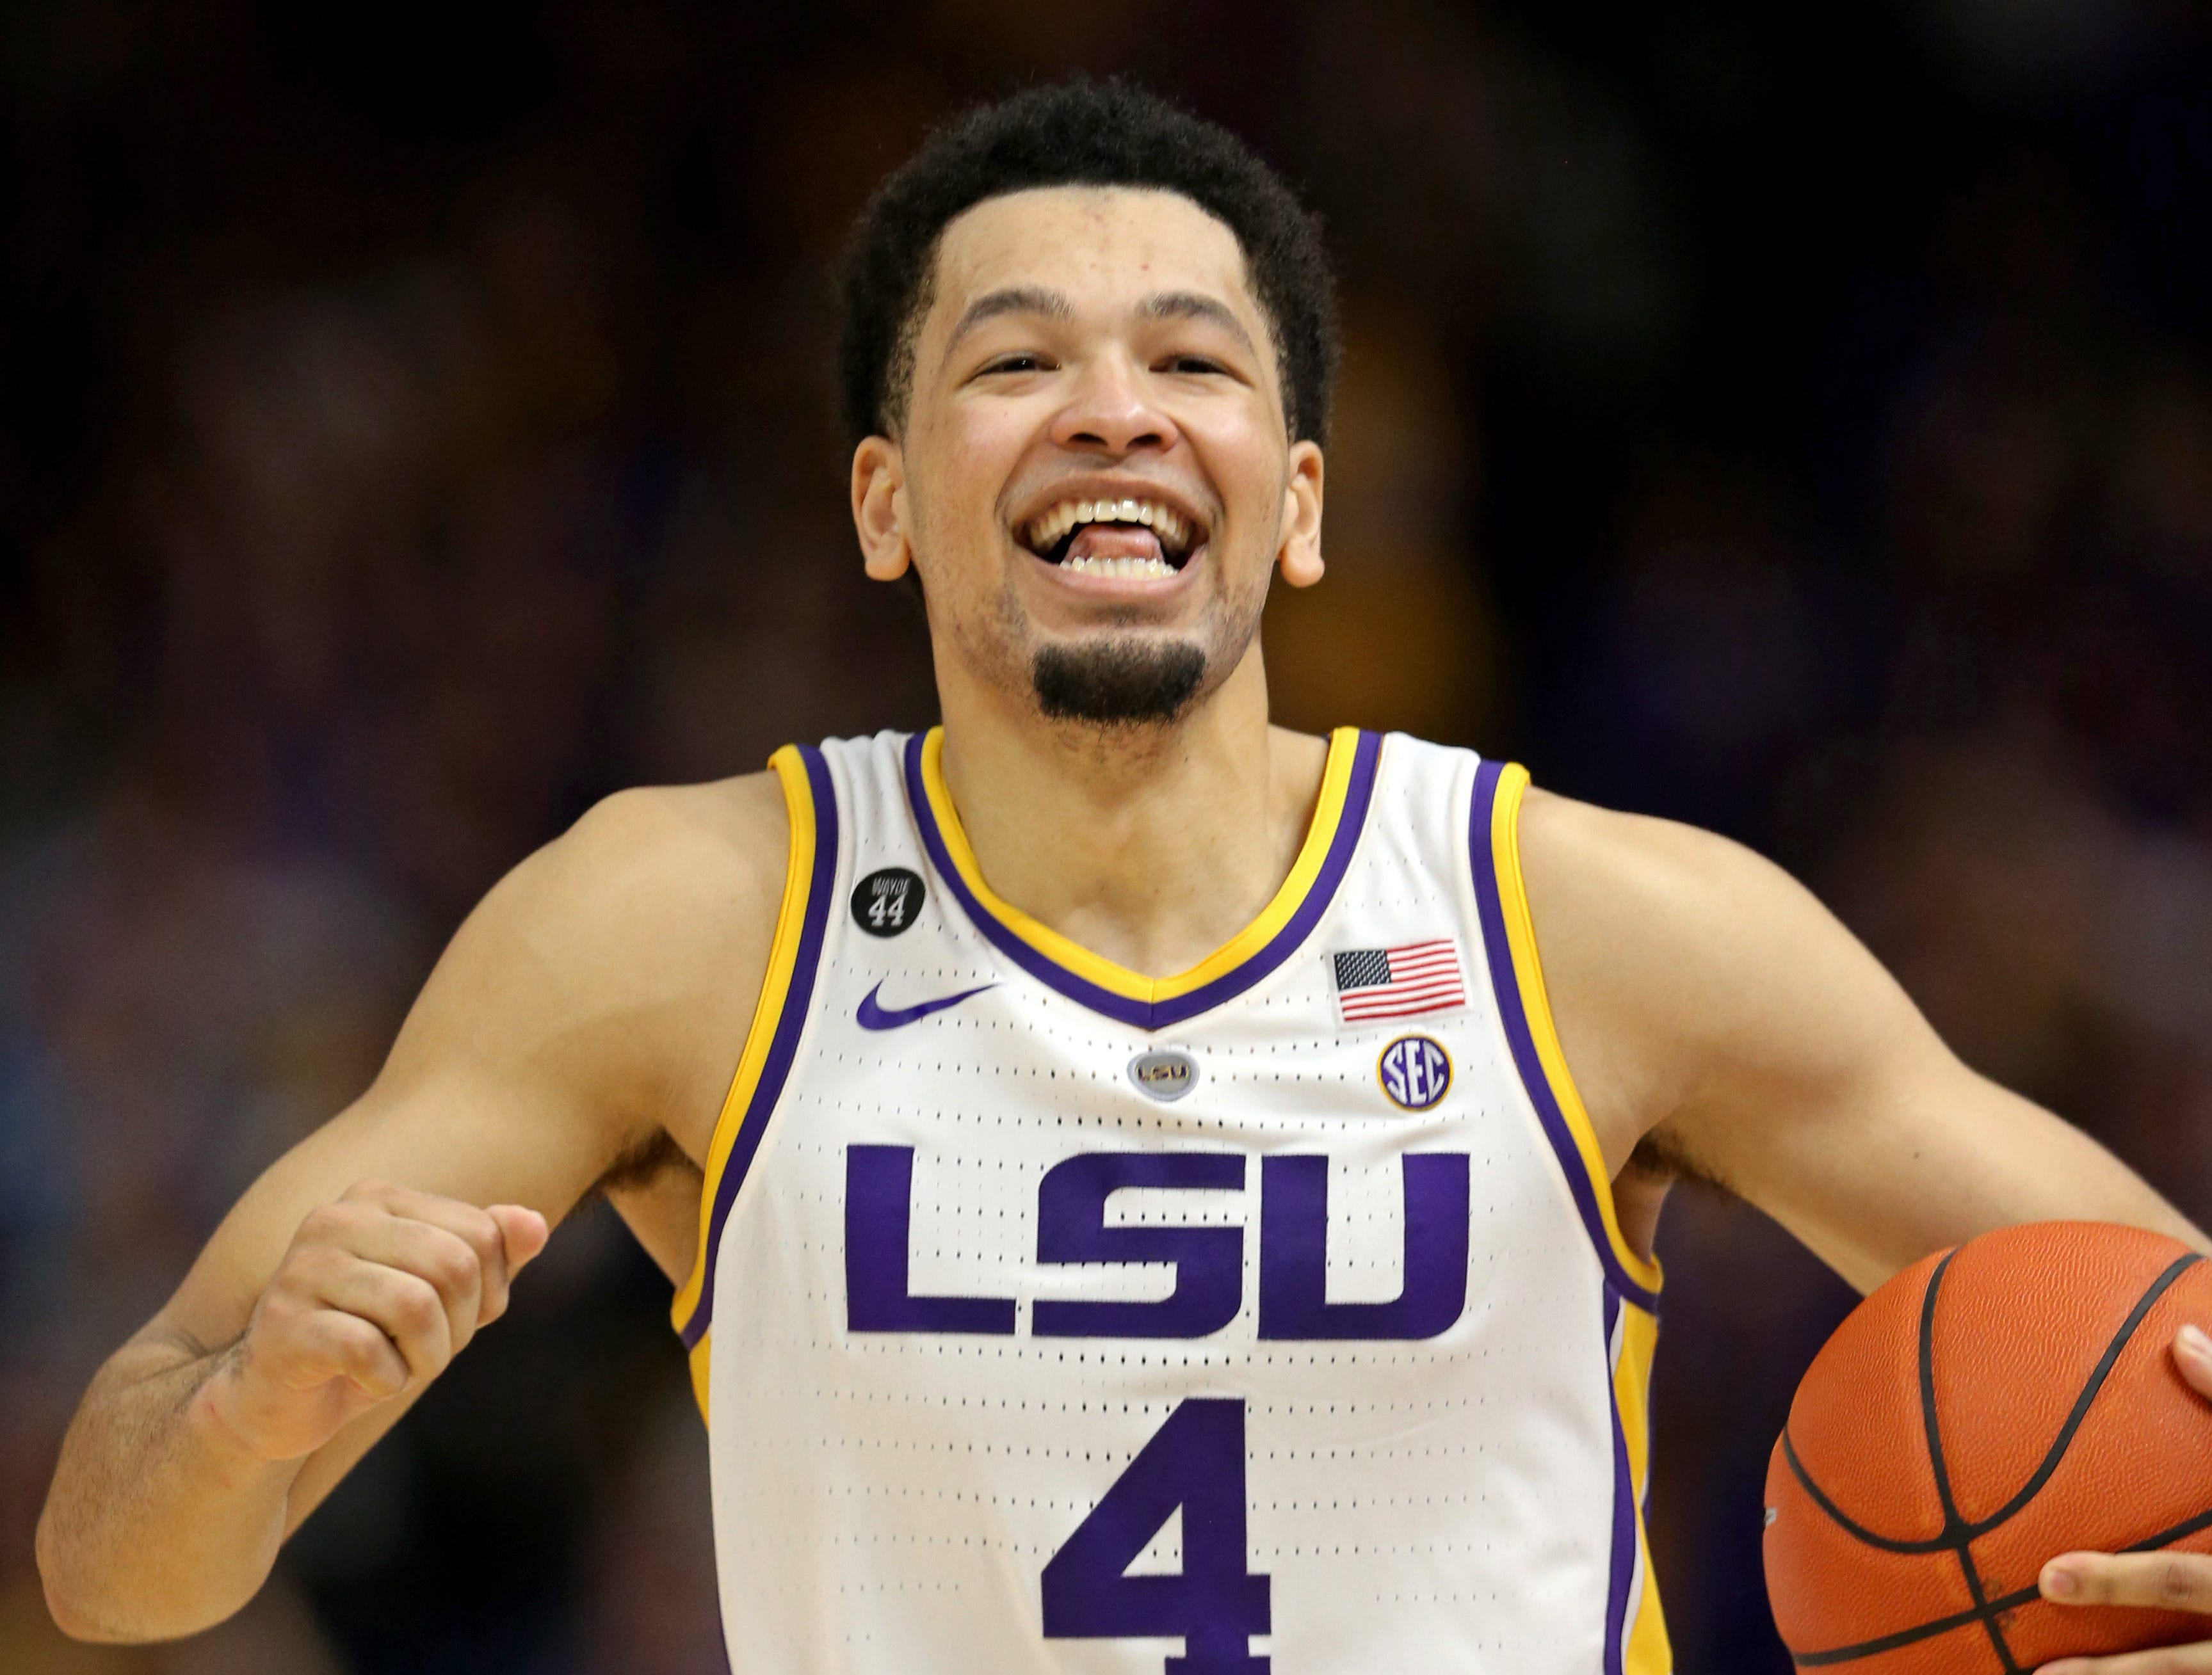 Feb 23, 2019; Baton Rouge, LA, USA; LSU Tigers guard Skylar Mays (4) celebrates a Tennessee Volunteers foul in overtime against the Tennessee Volunteers at the Maravich Assembly Center. LSU won, 82-80 in overtime. Mandatory Credit: Chuck Cook-USA TODAY Sports